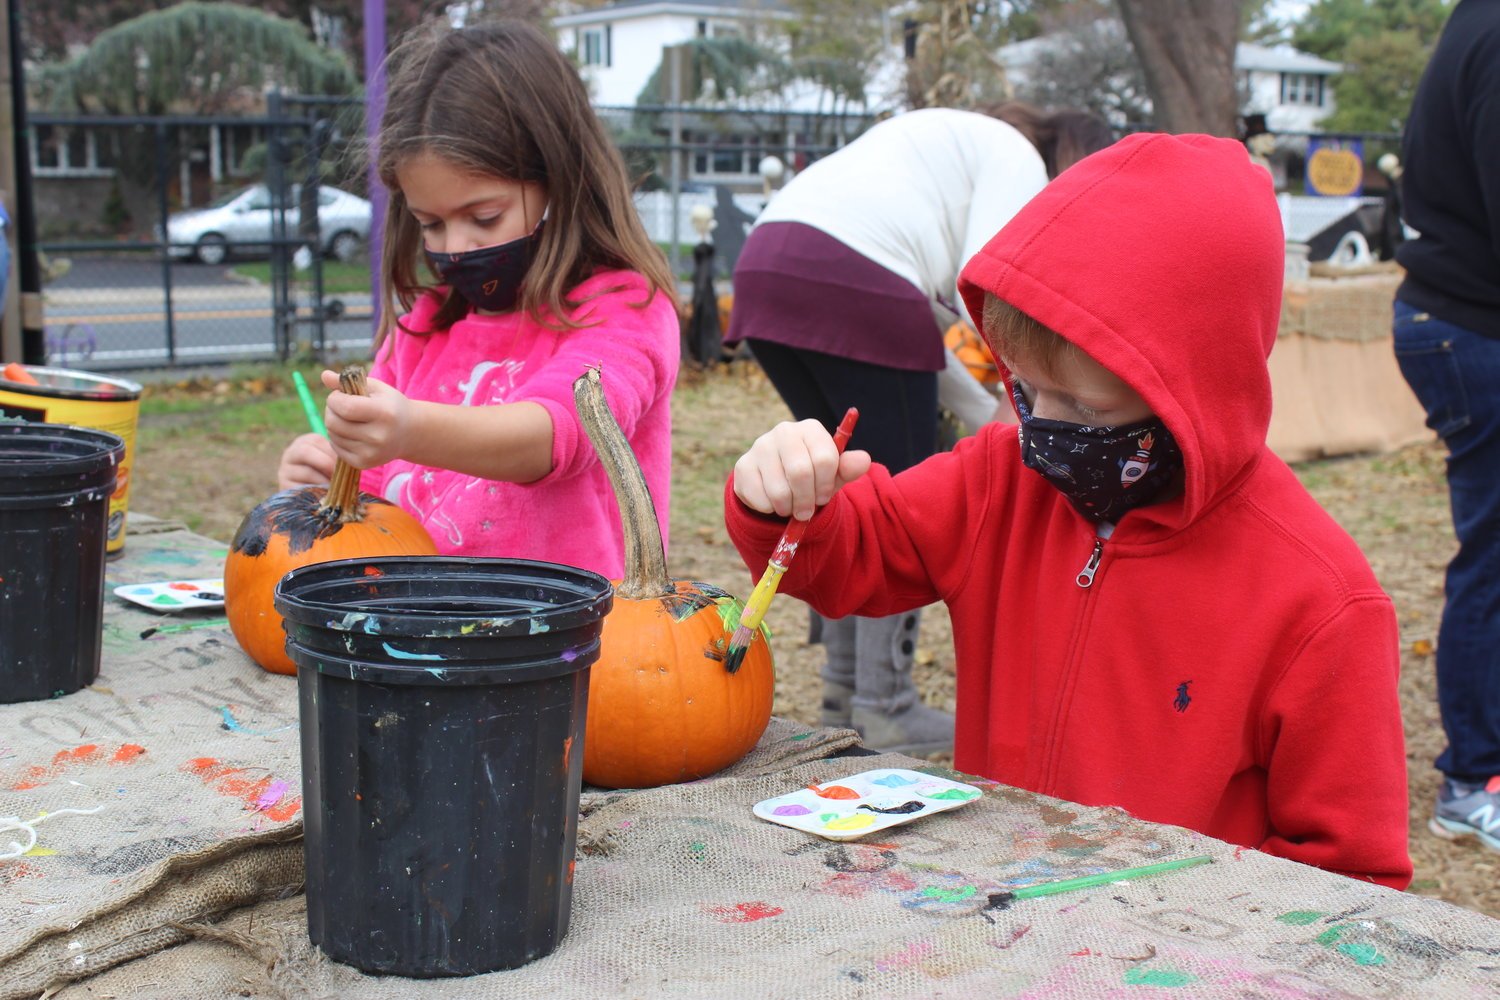 Liana Yodice, 6, and her little brother Anthony, 5, of East Meadow, got started on their pumpkins.